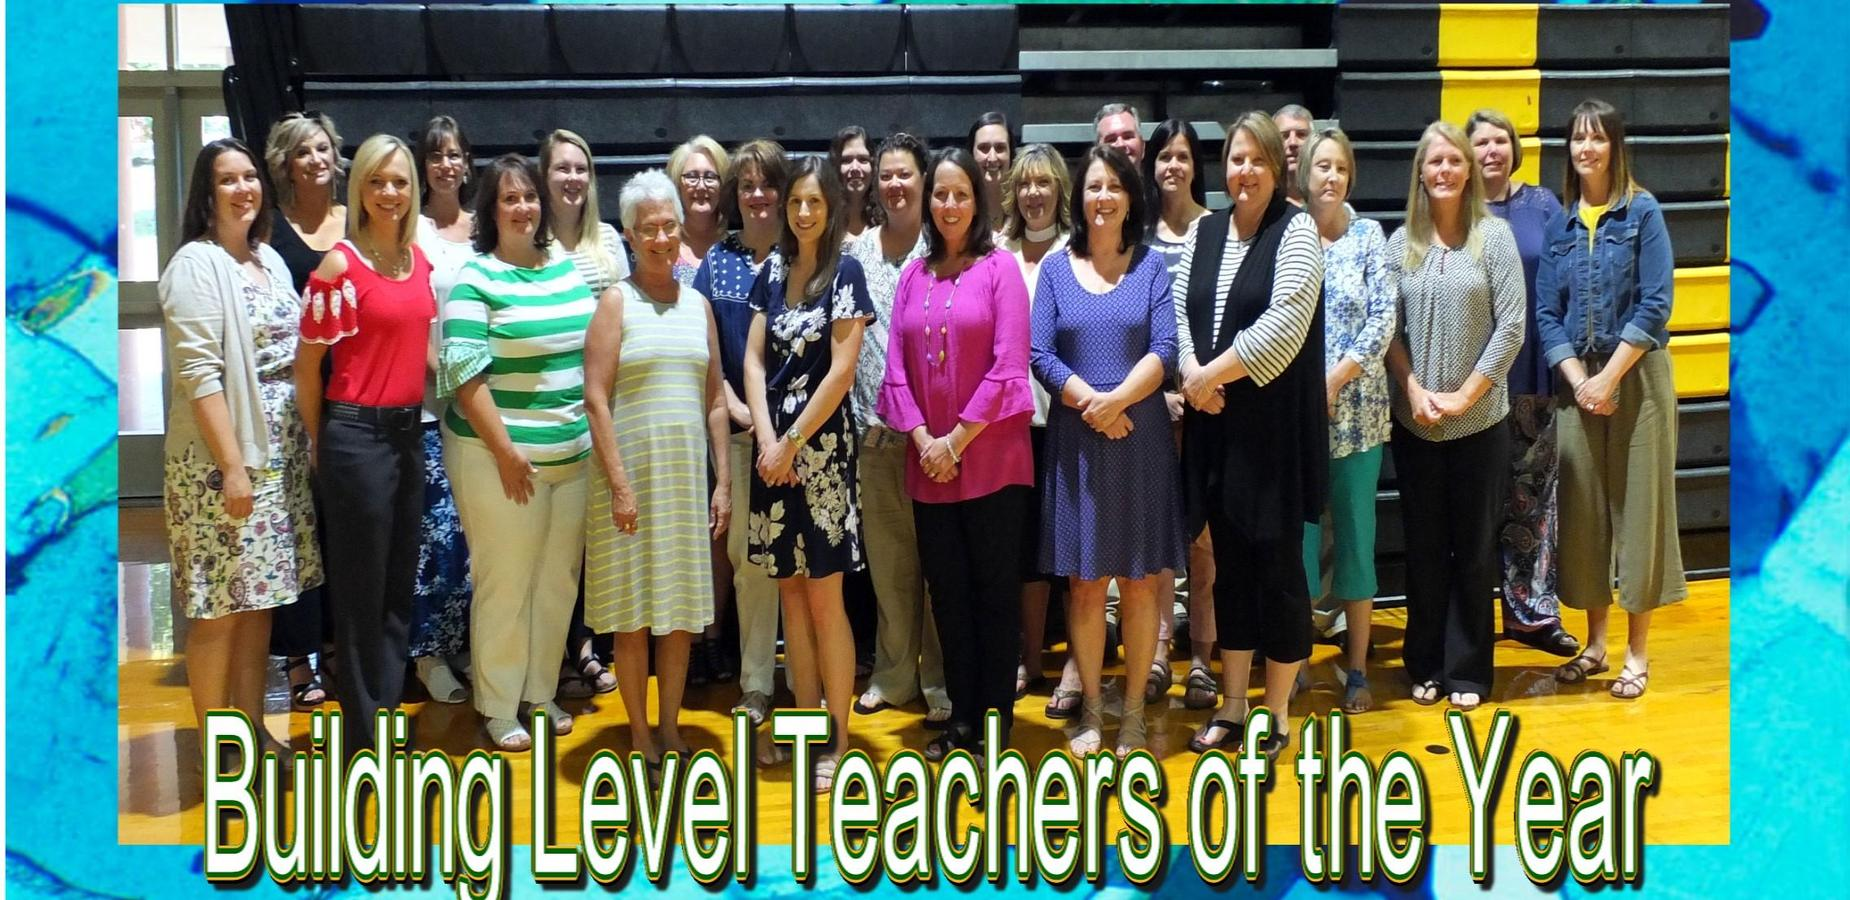 Building Level Teachers of the Year